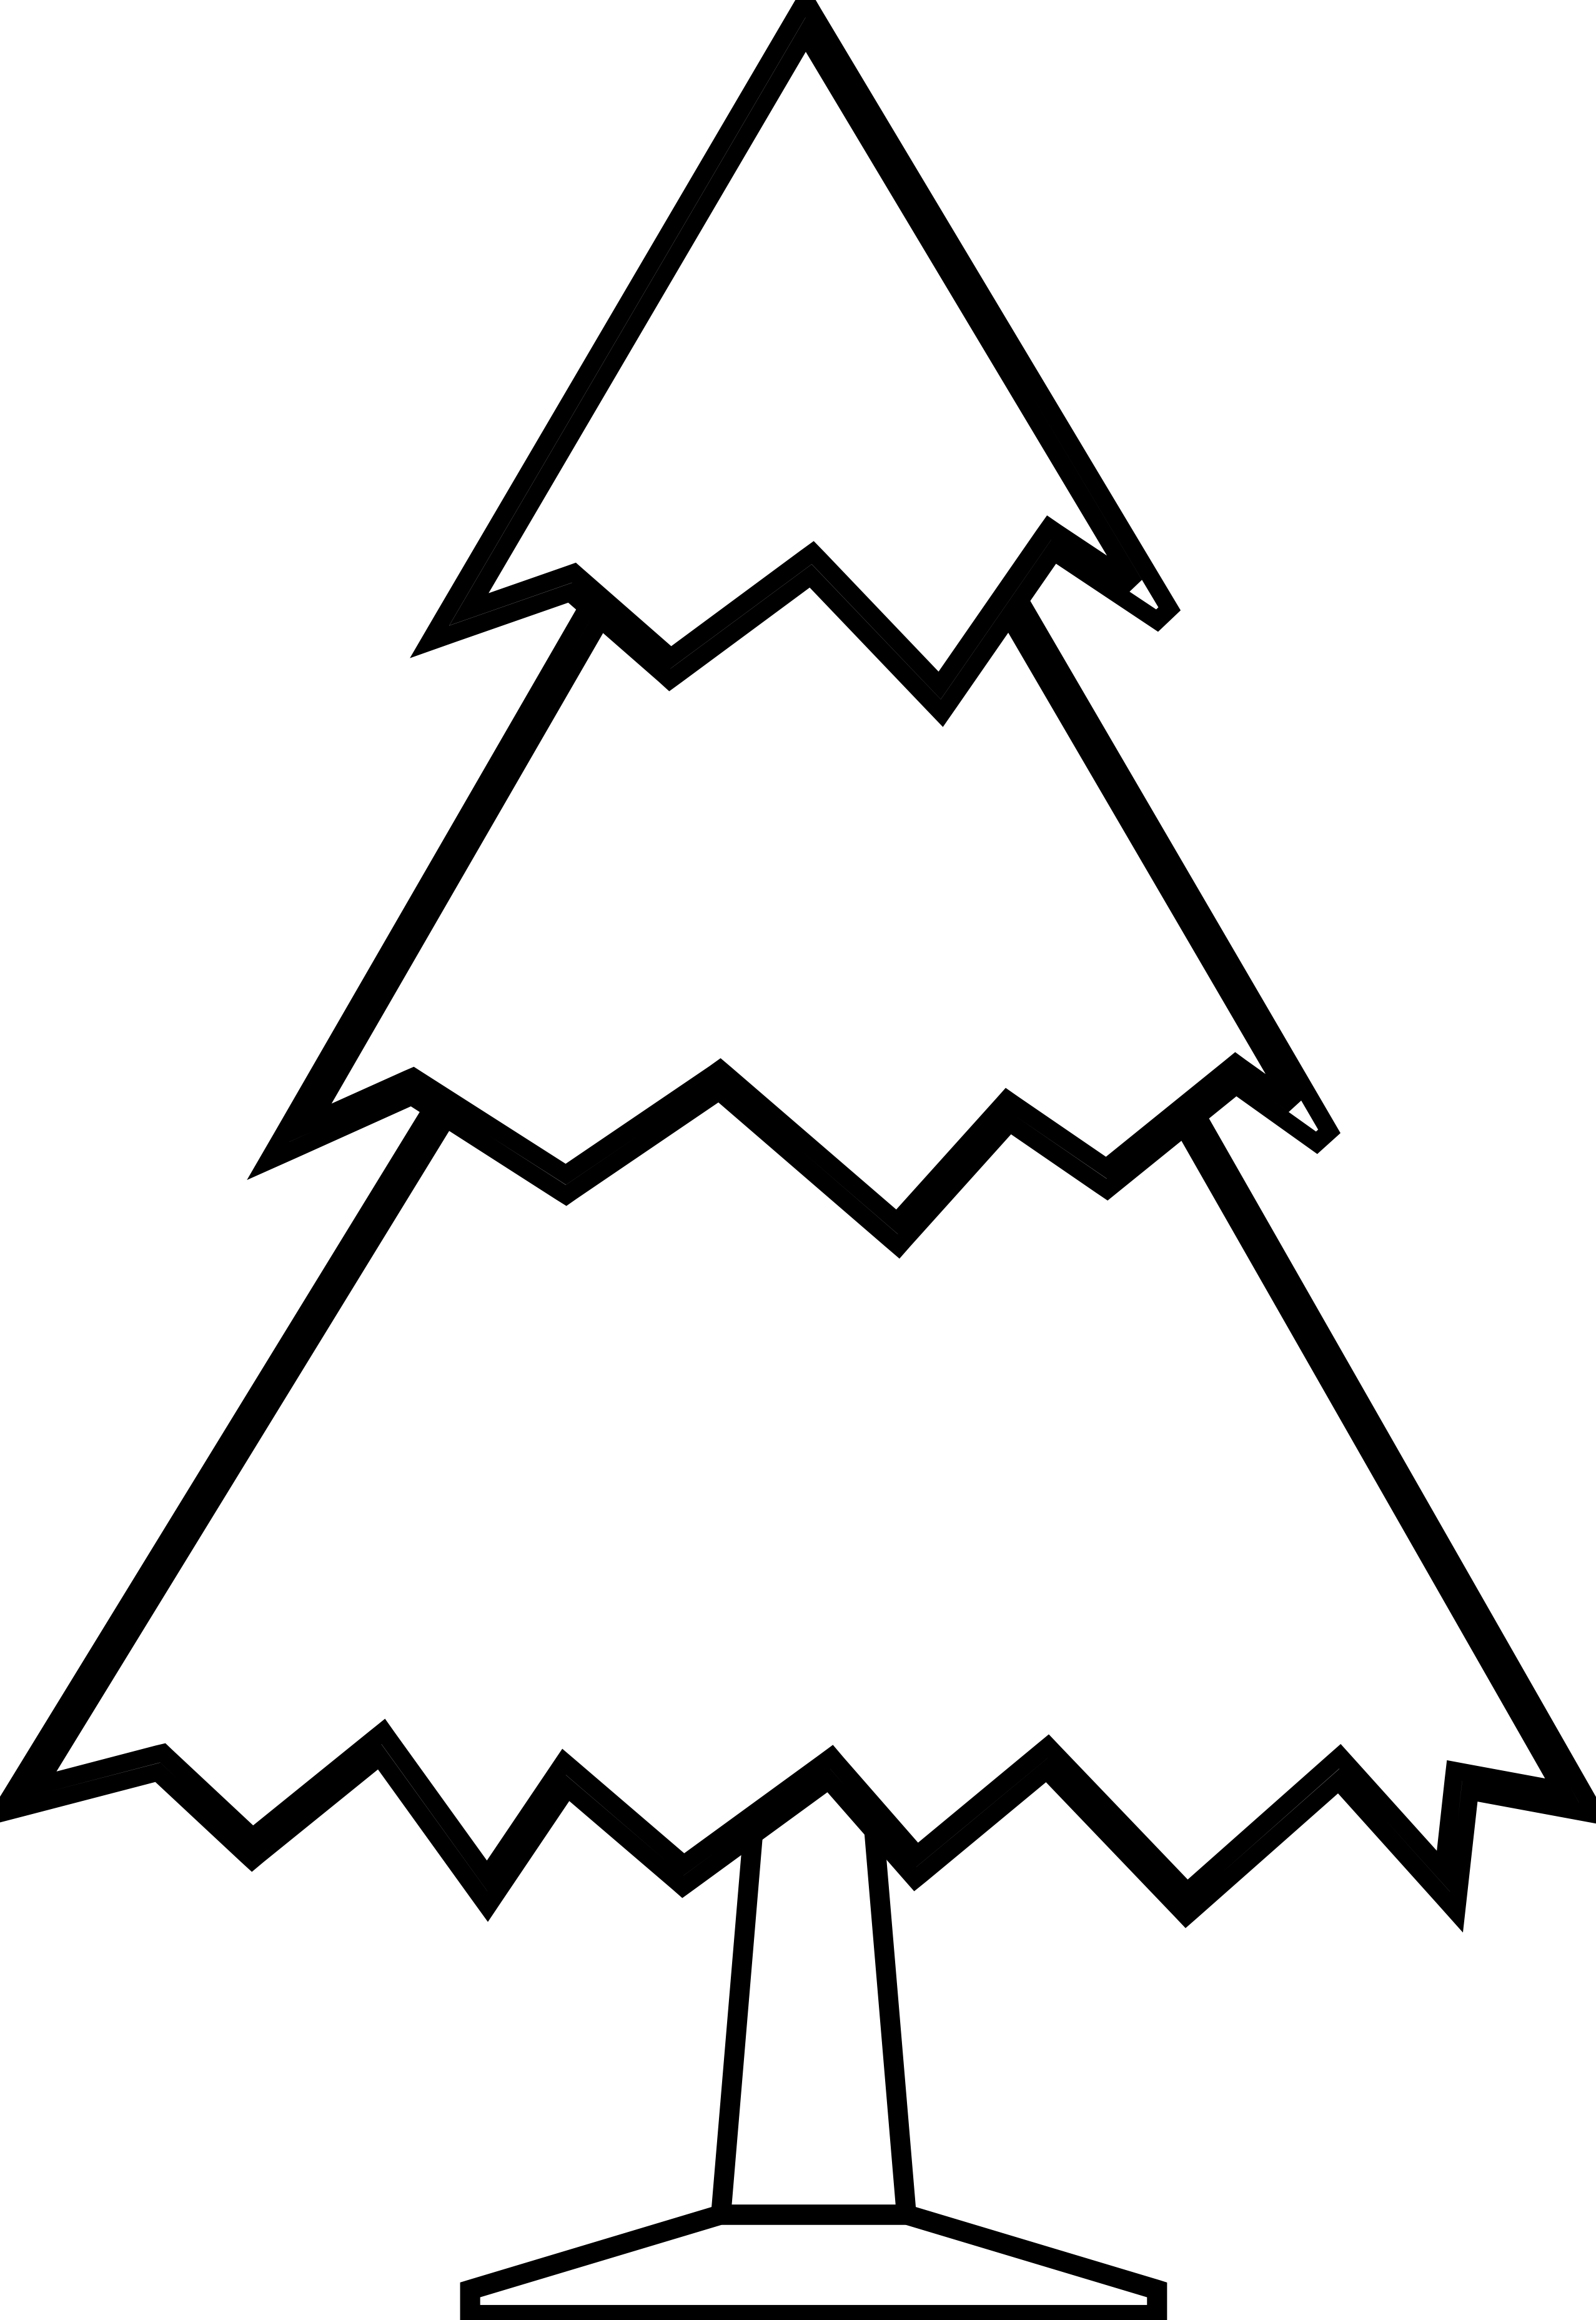 Black tree clipart svg royalty free Simple Black And White Tree Drawing | Clipart Panda - Free Clipart ... svg royalty free